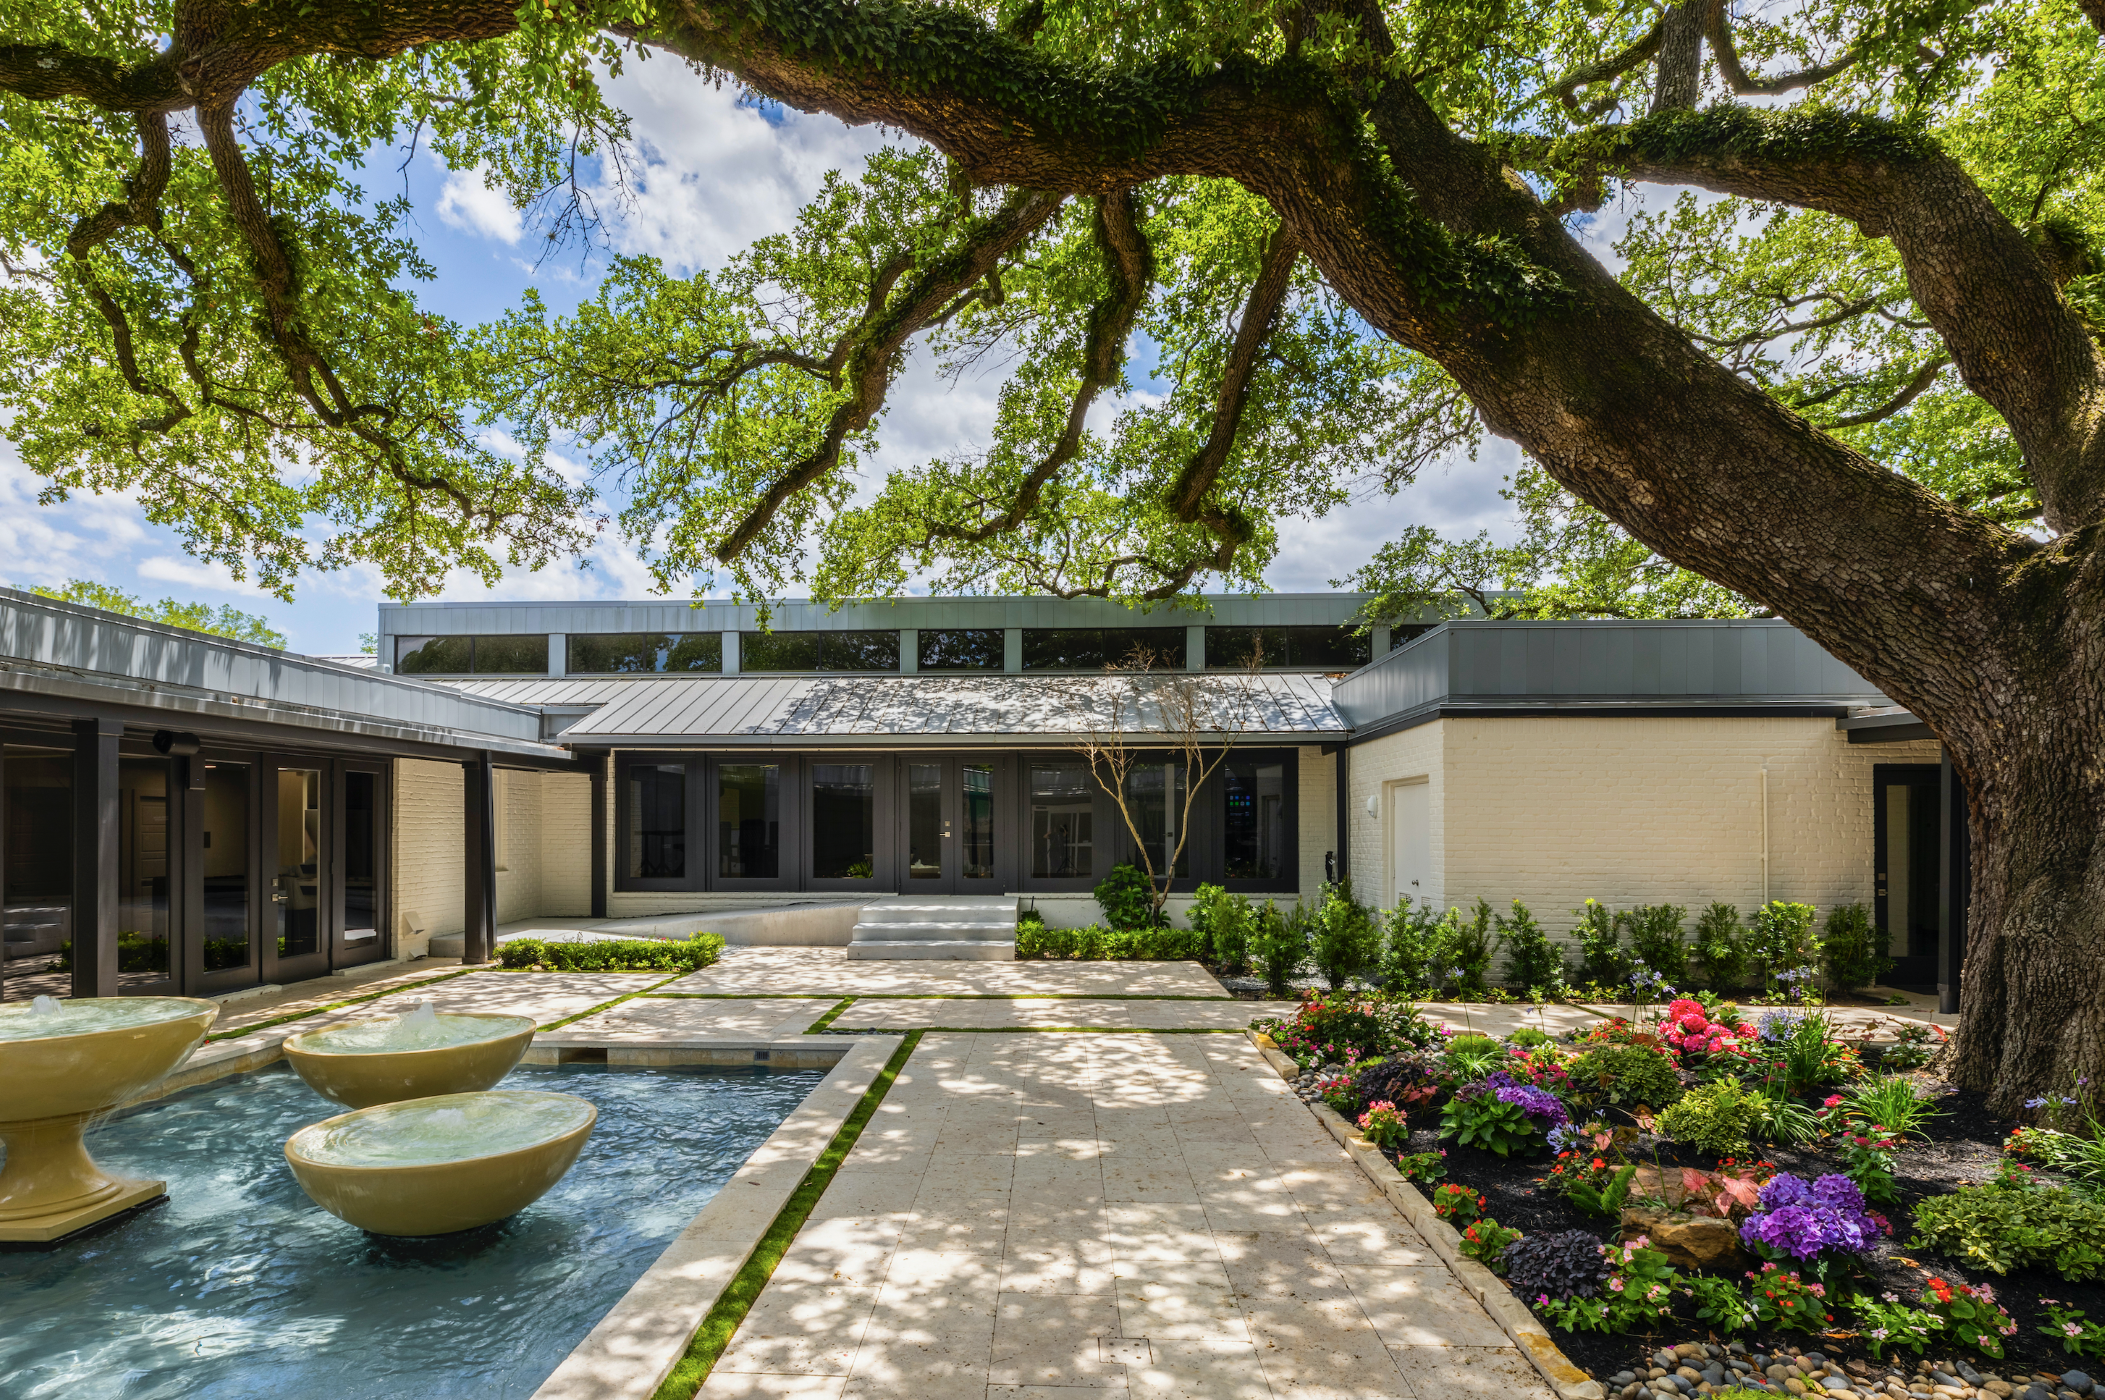 Sydenham Clinic makes its global debut in Houston. Its unique concept pairs precision medicine with a humanistic, and state-of-art approach to wellness. (Photo by Julie Soefer)